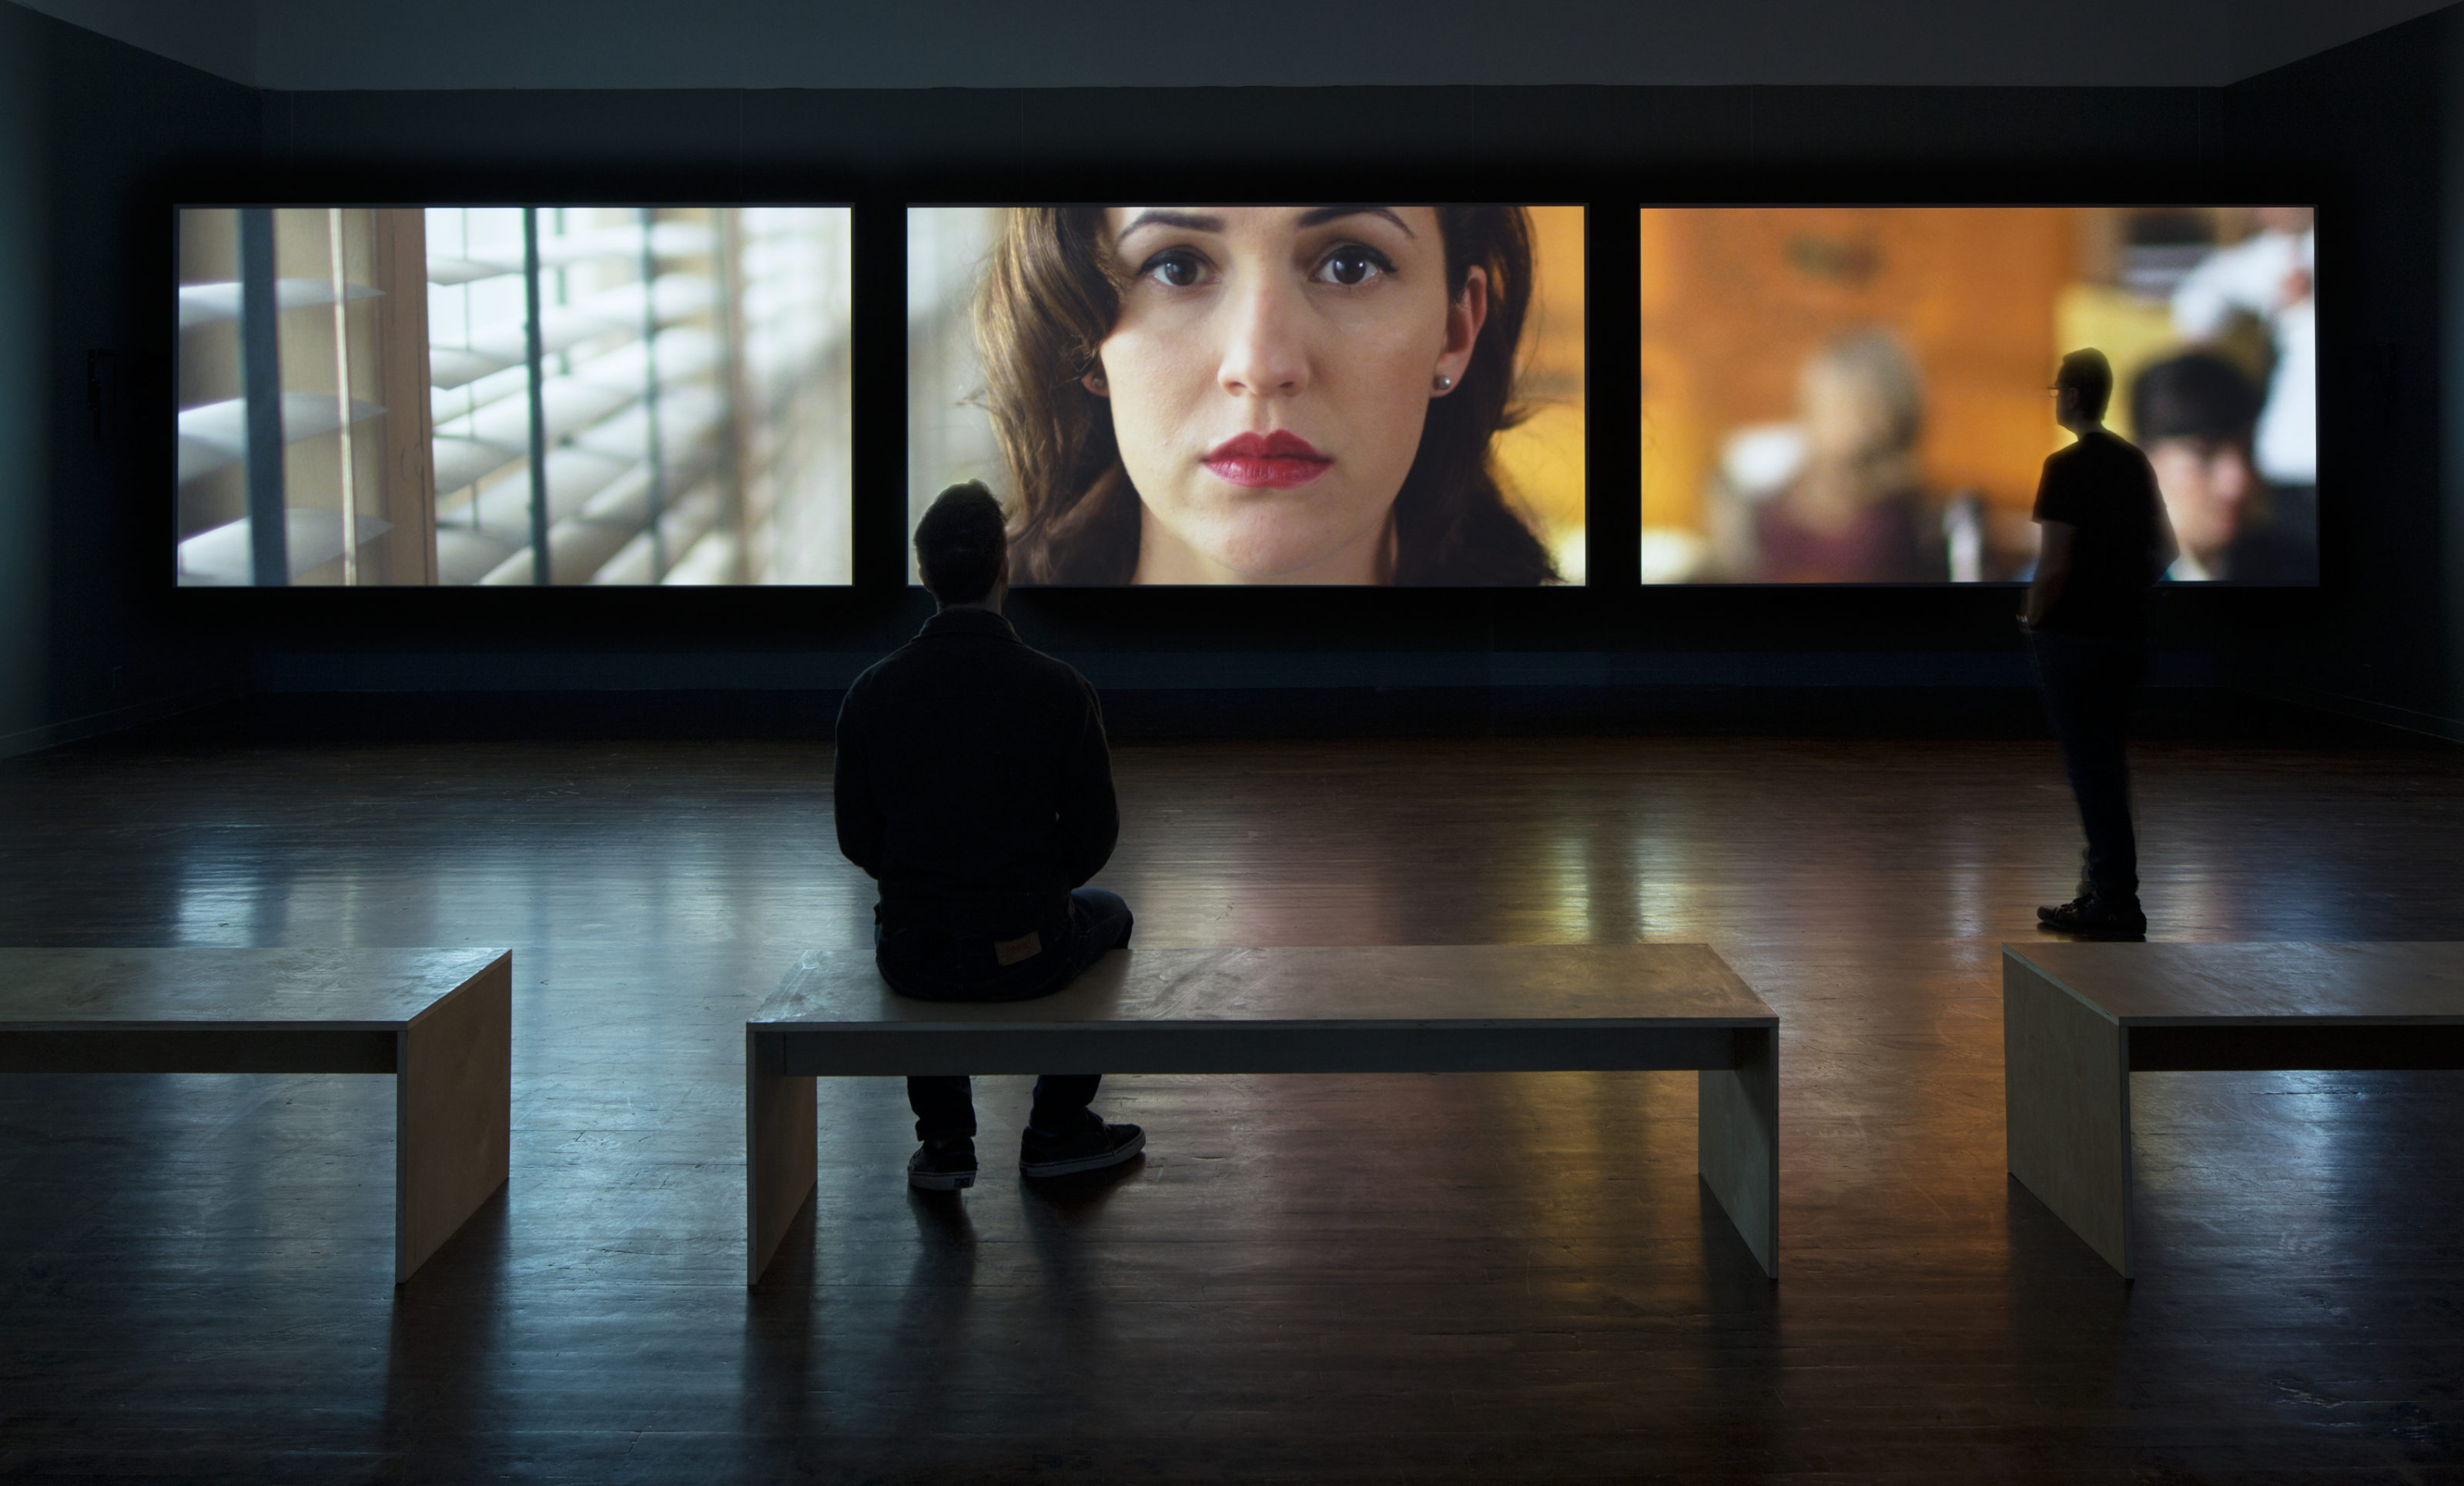 Patron sitting and watching the film artwork Giant, by Theresa Hubbard / Alexander Birchler at the Blanton Museum of Art